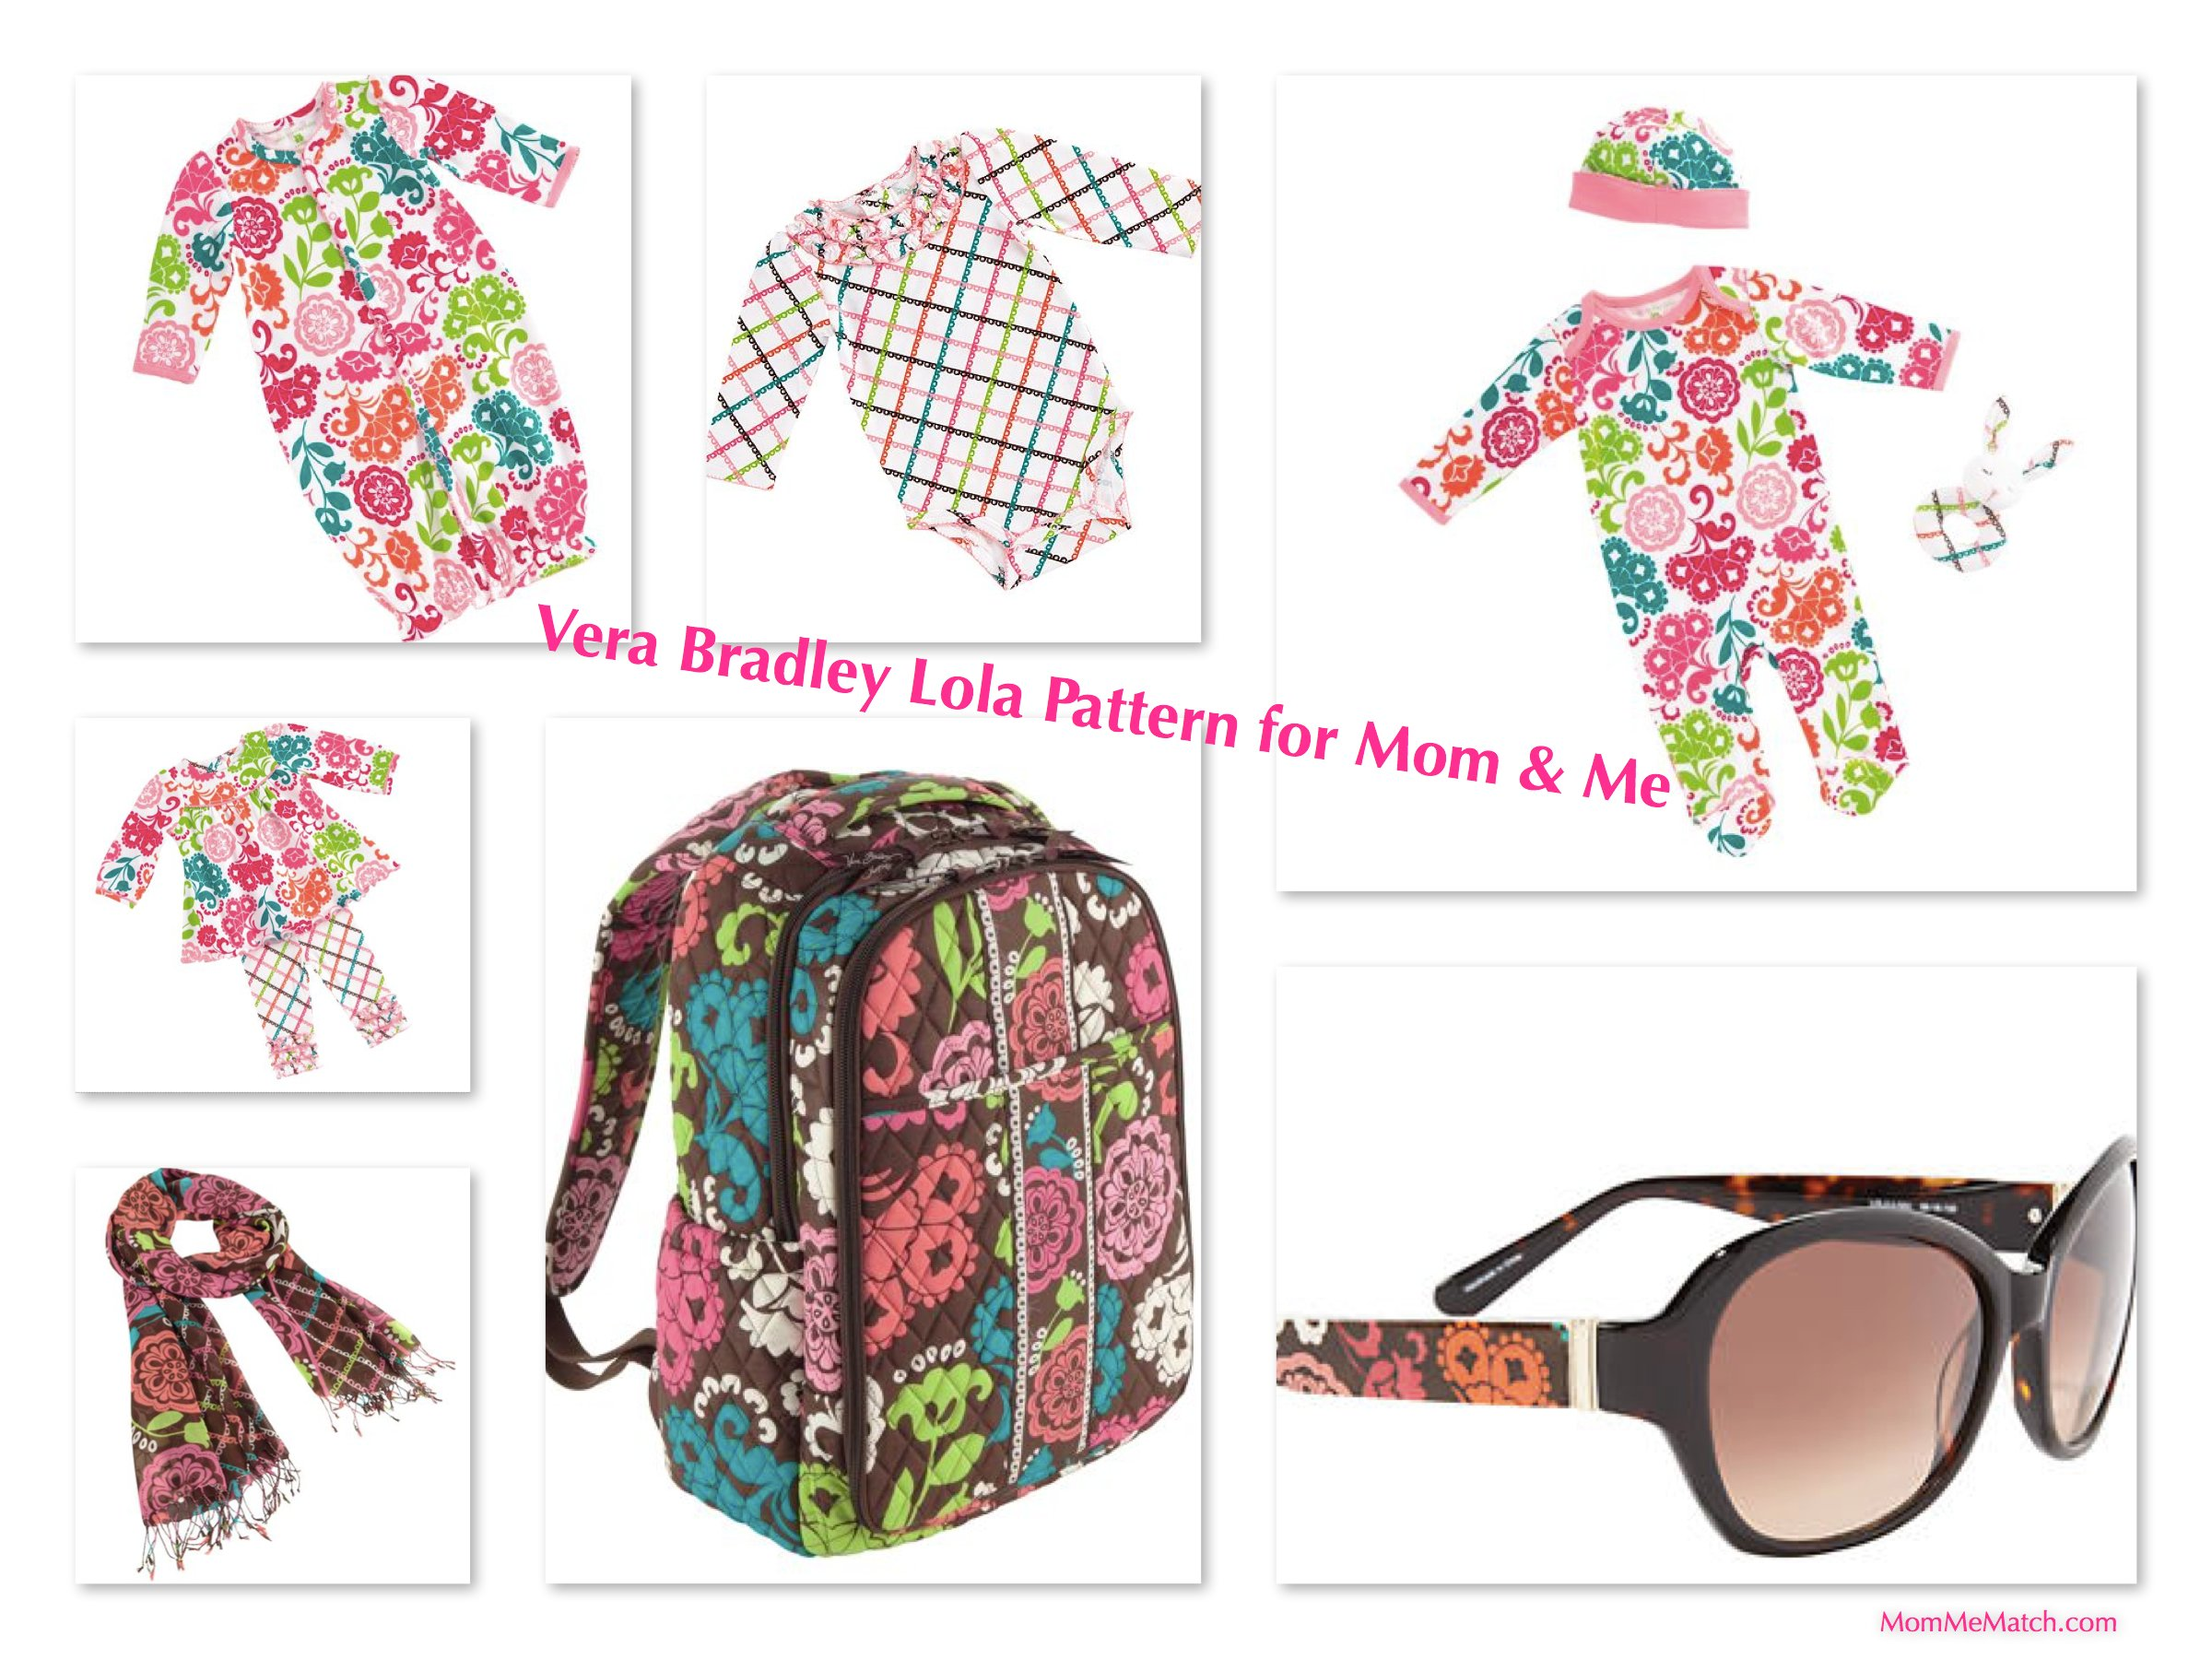 Mom & Me Matching Vera Bradley Lola Pattern Baby Bags & Outfits